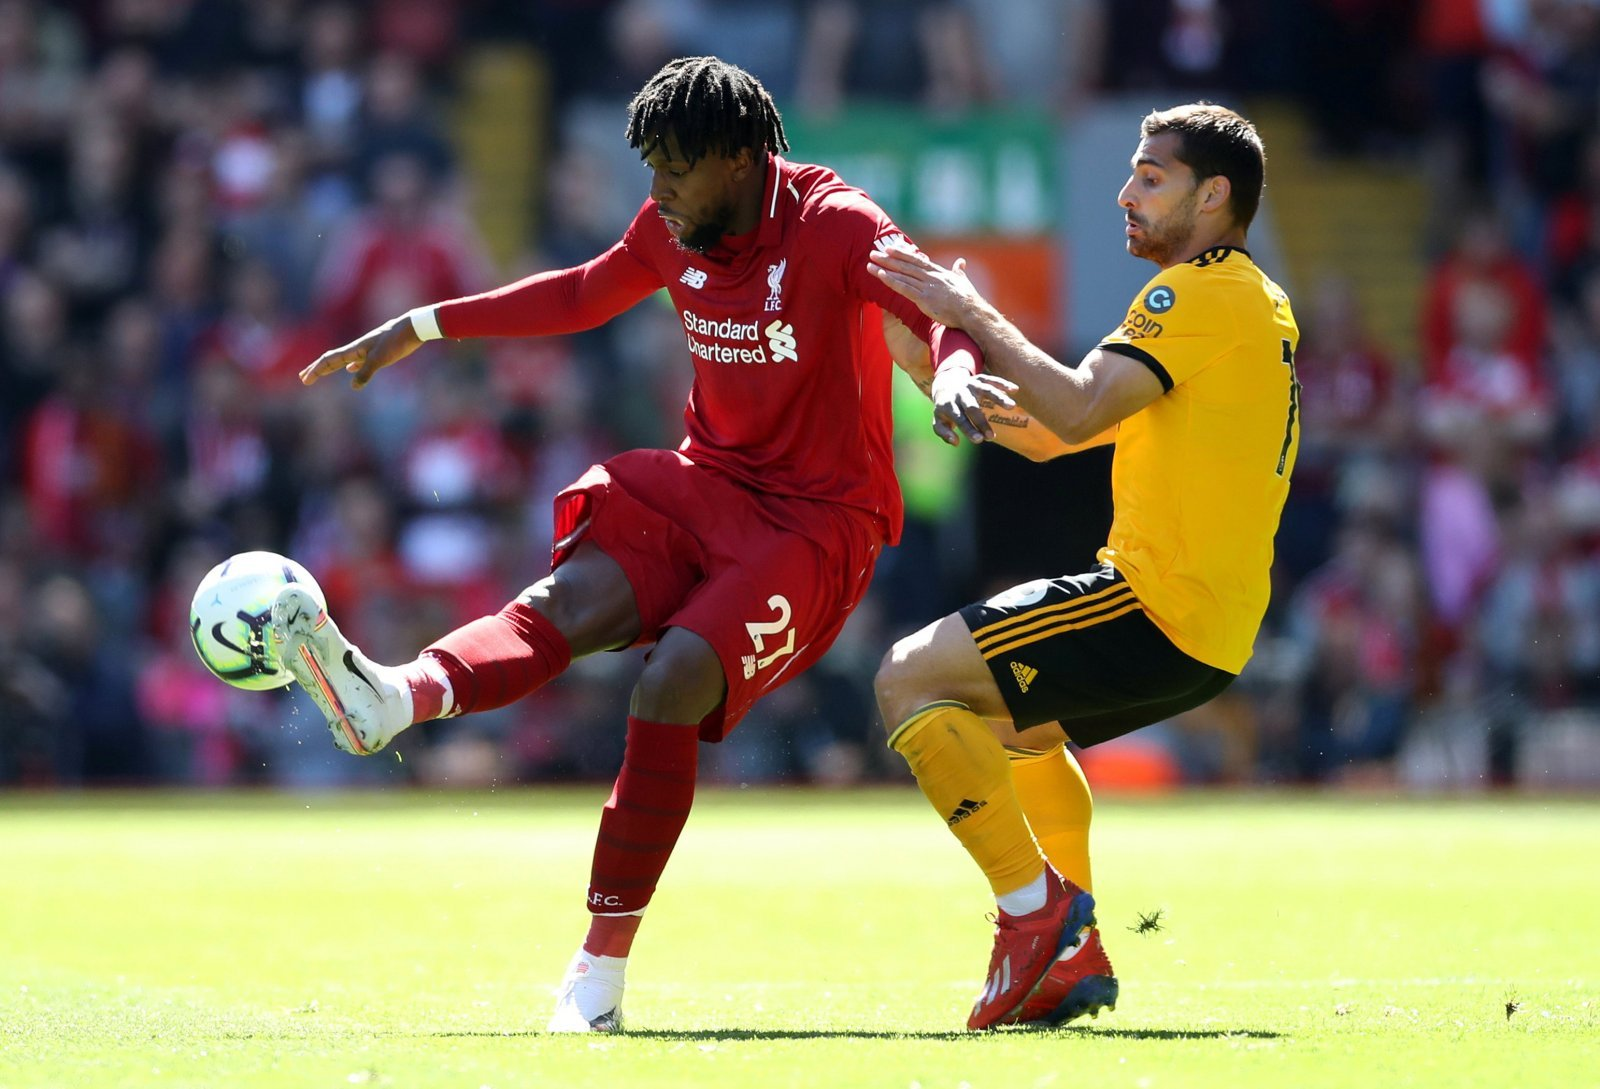 Liverpool: Divock Origi could be set for starting berth in Reds' line-up